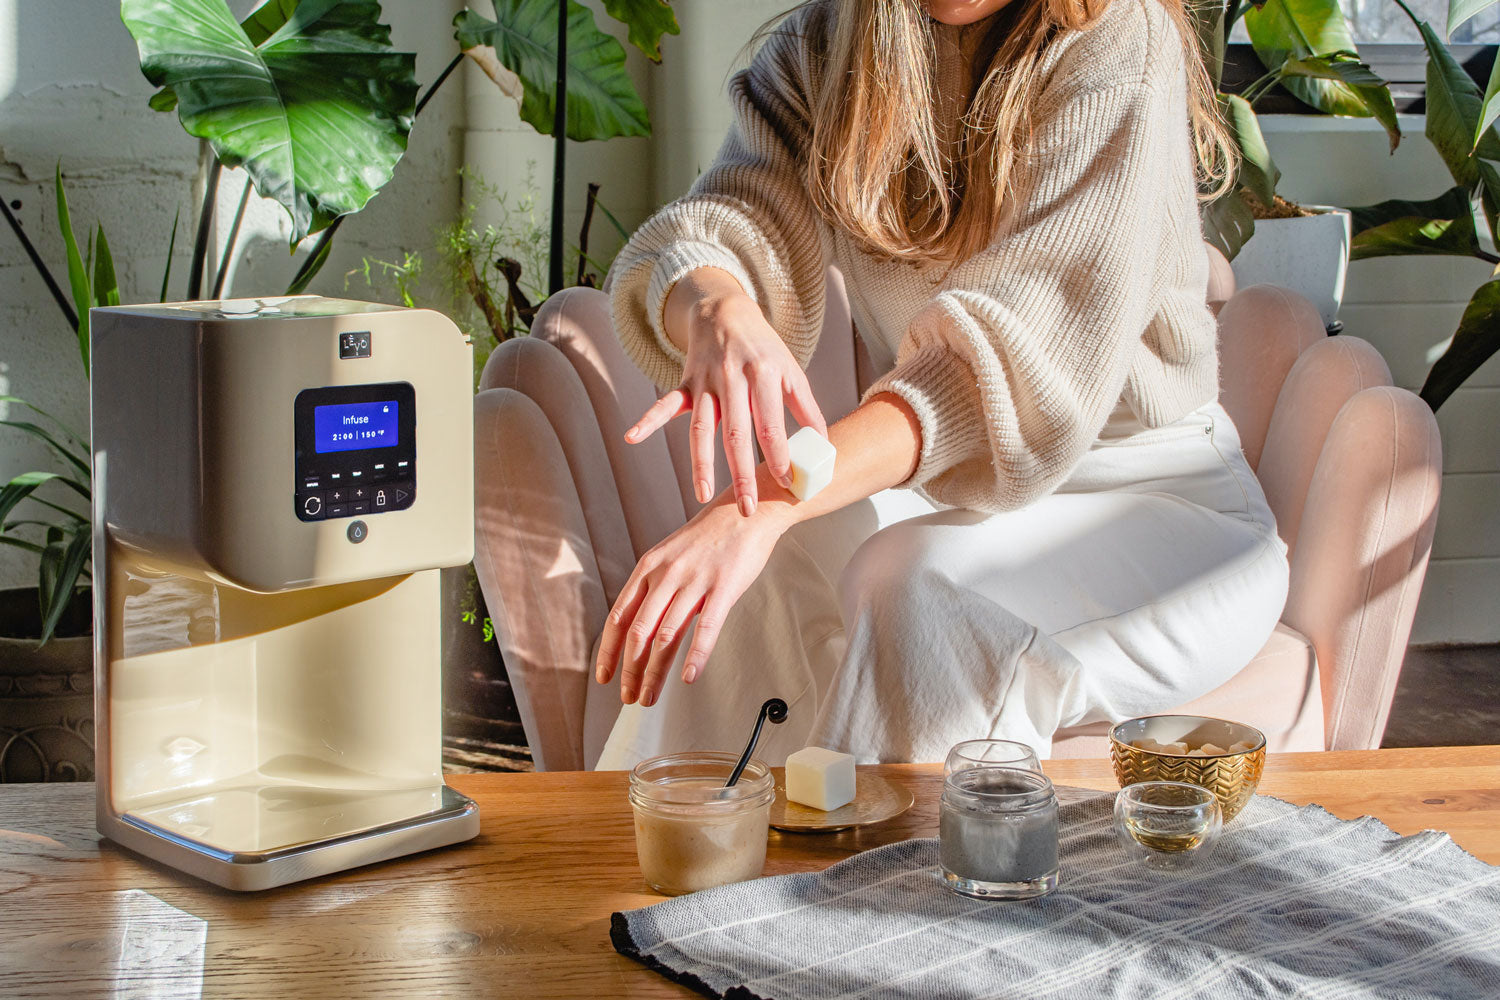 Image of a woman sitting next to a Honey Cream LEVO II machine with her DIY skincare routine.